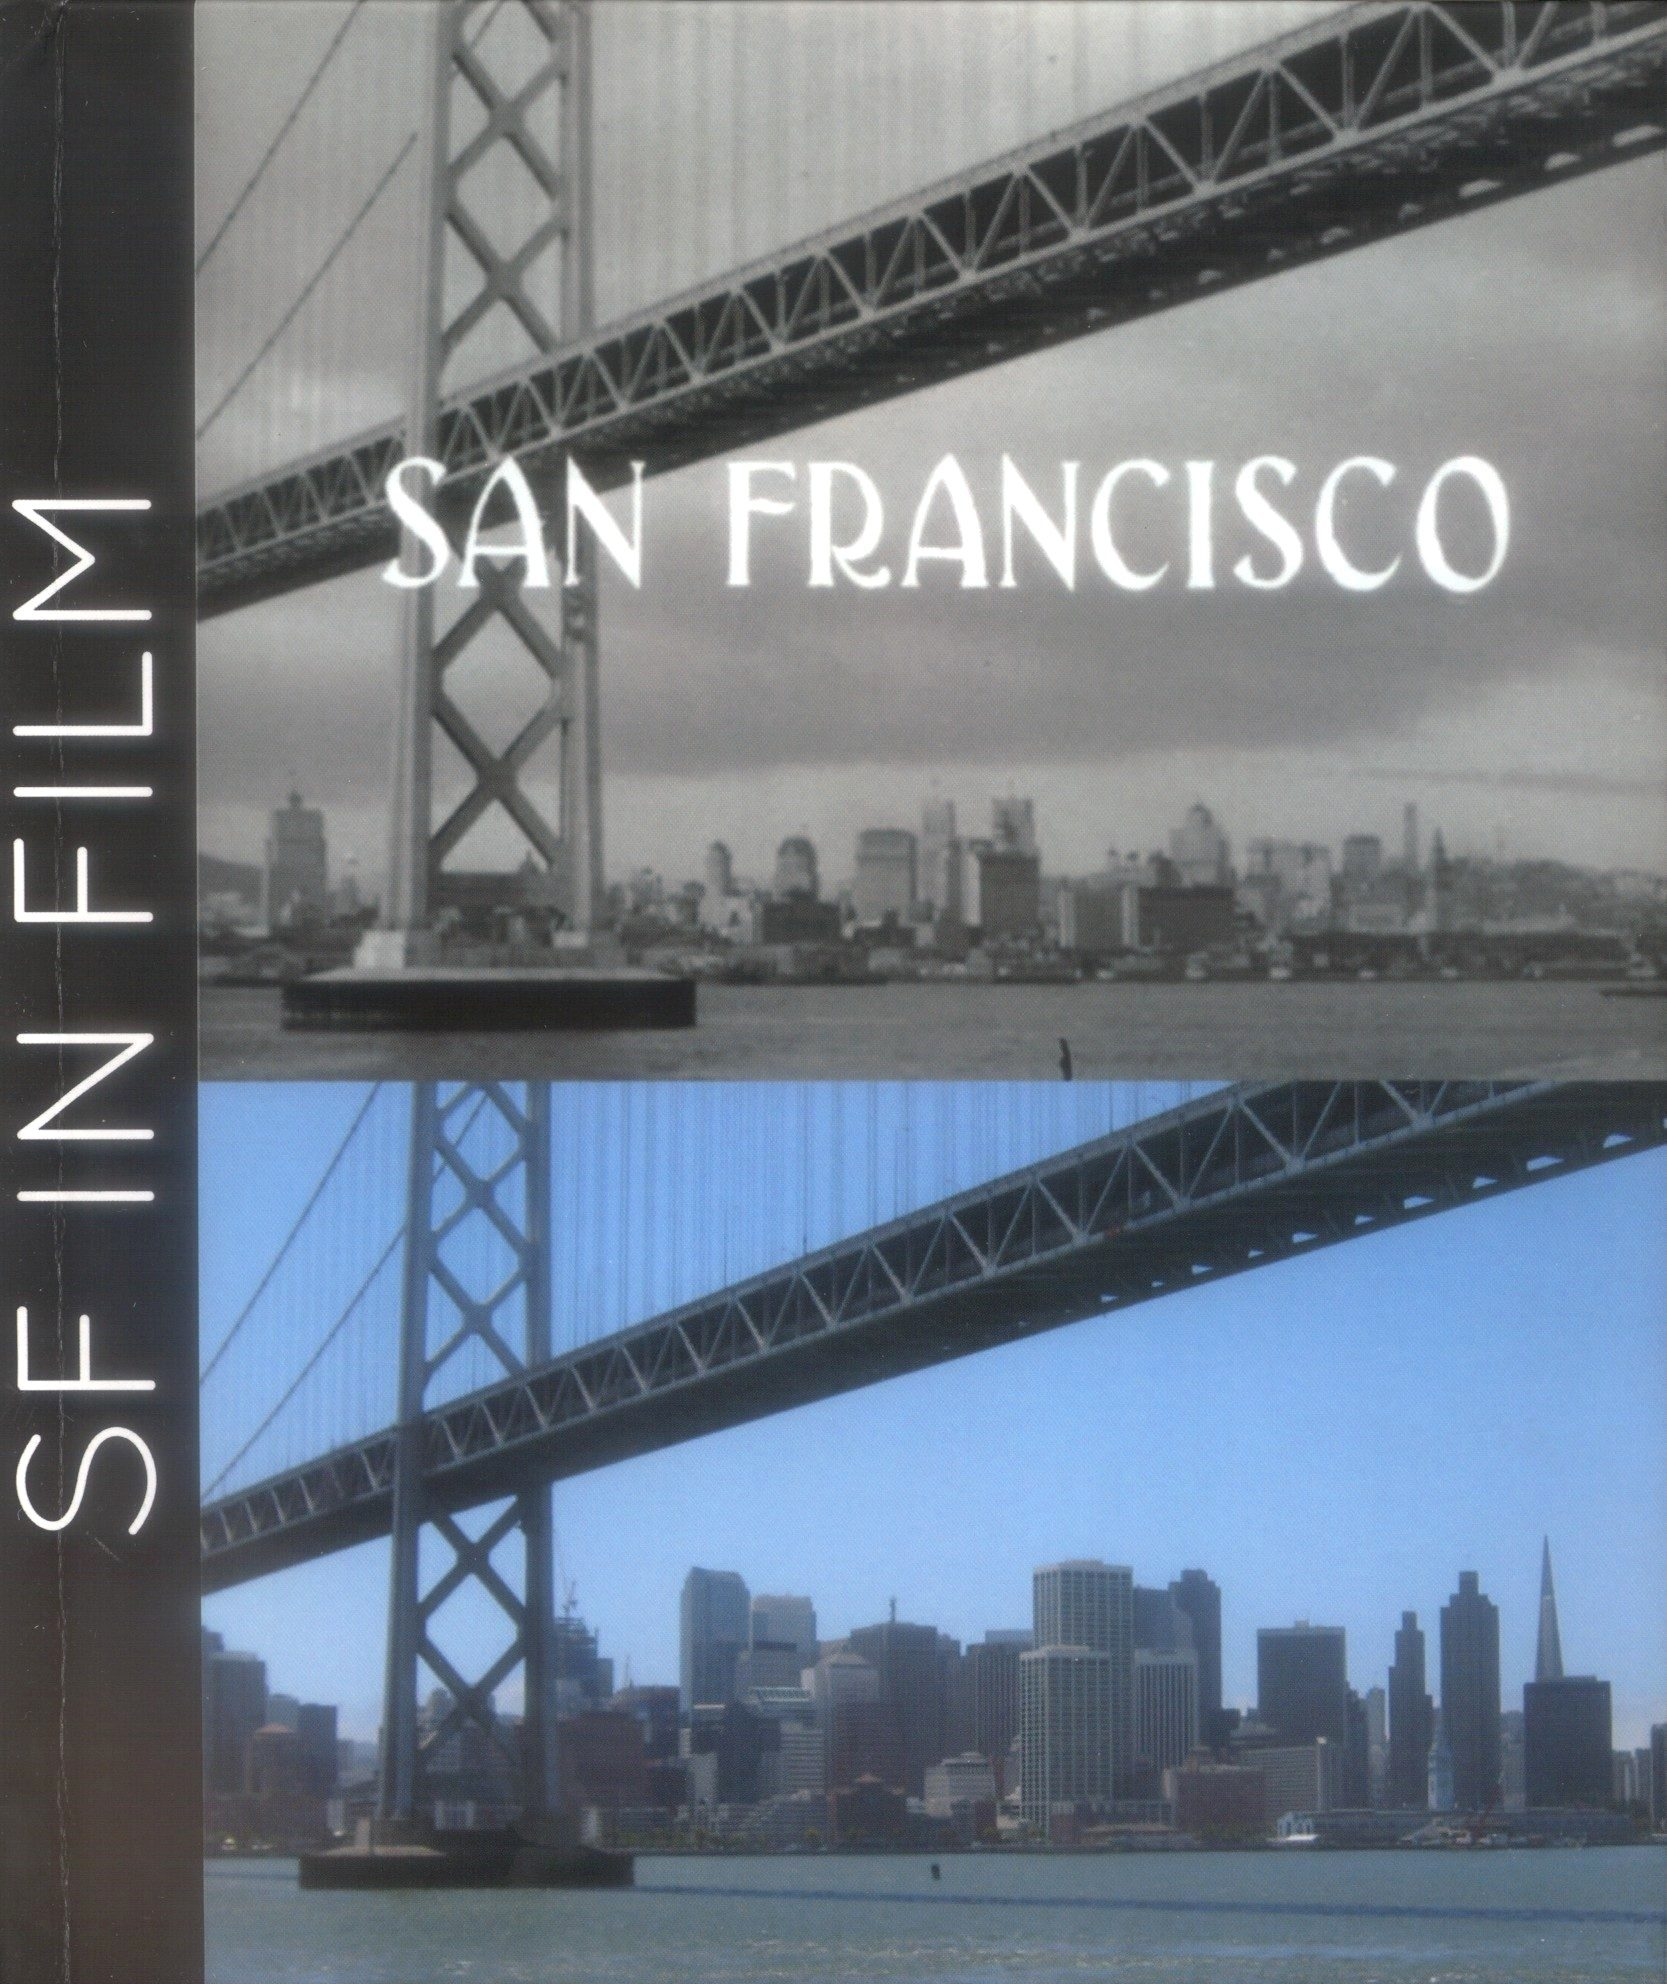 San Francisco Film Locations Then & Now